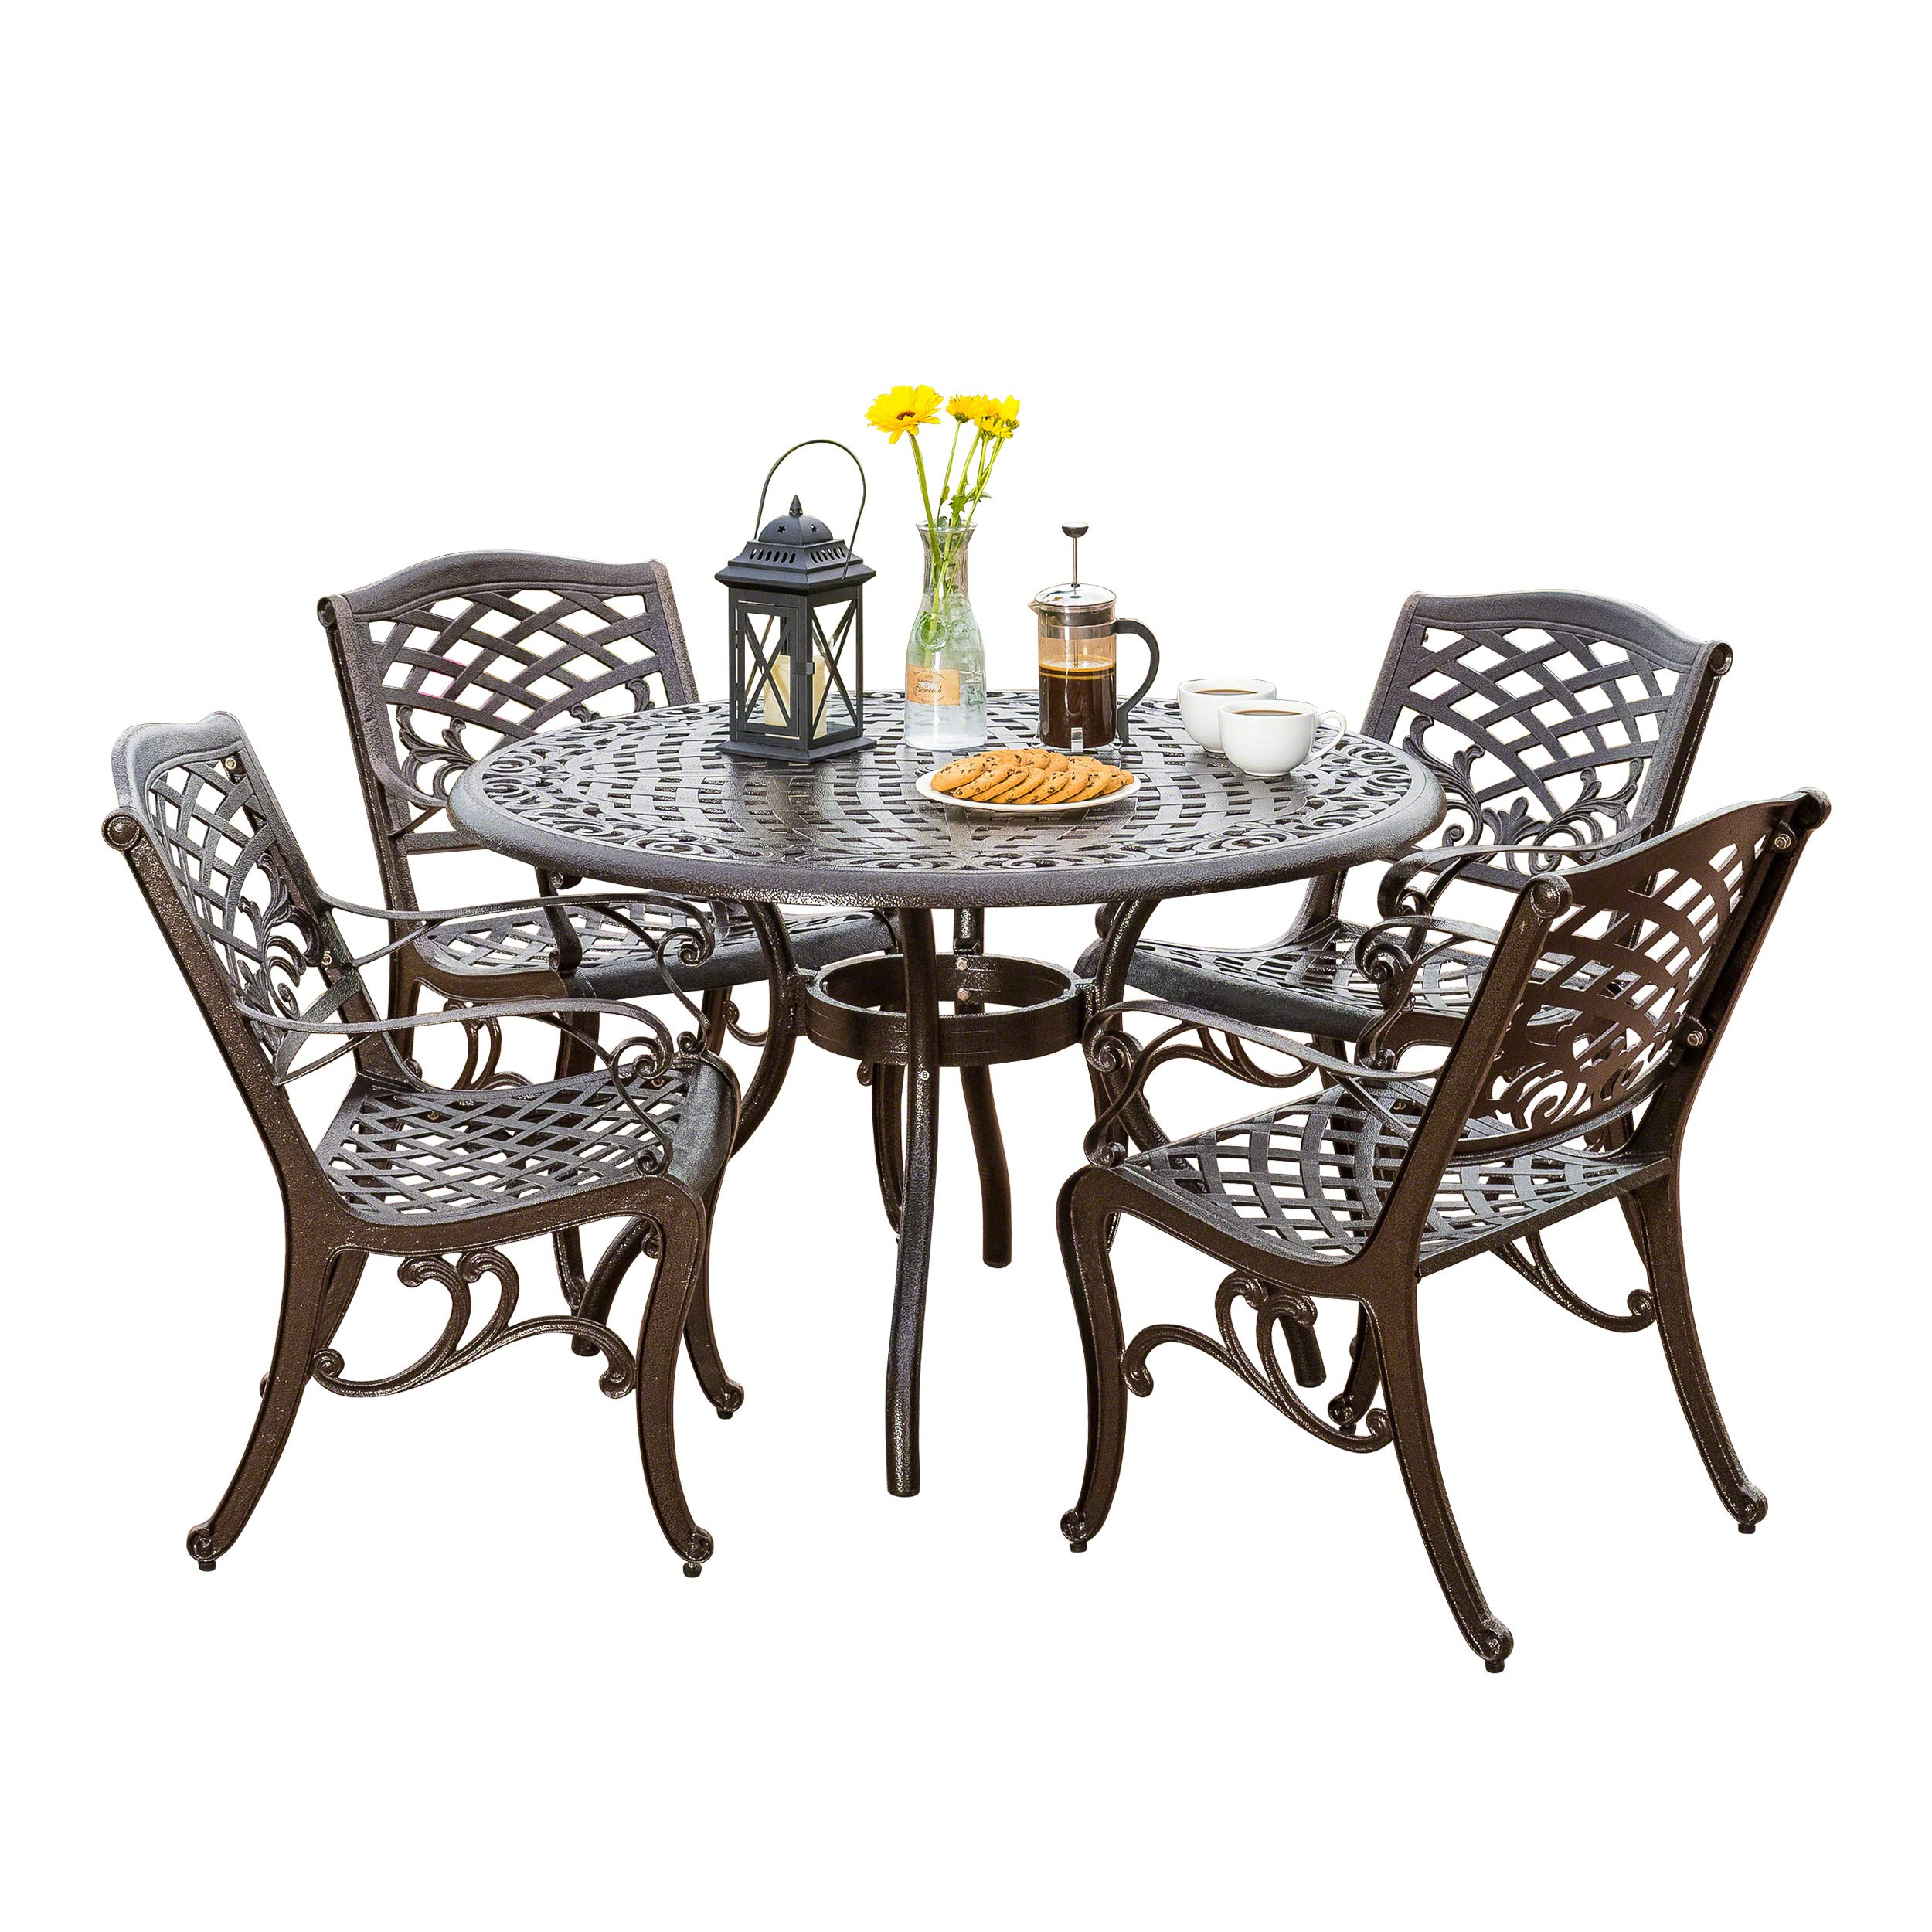 Great deal furniture covington 5 piece cast aluminum outdoor dining set perfect for patio in bronze